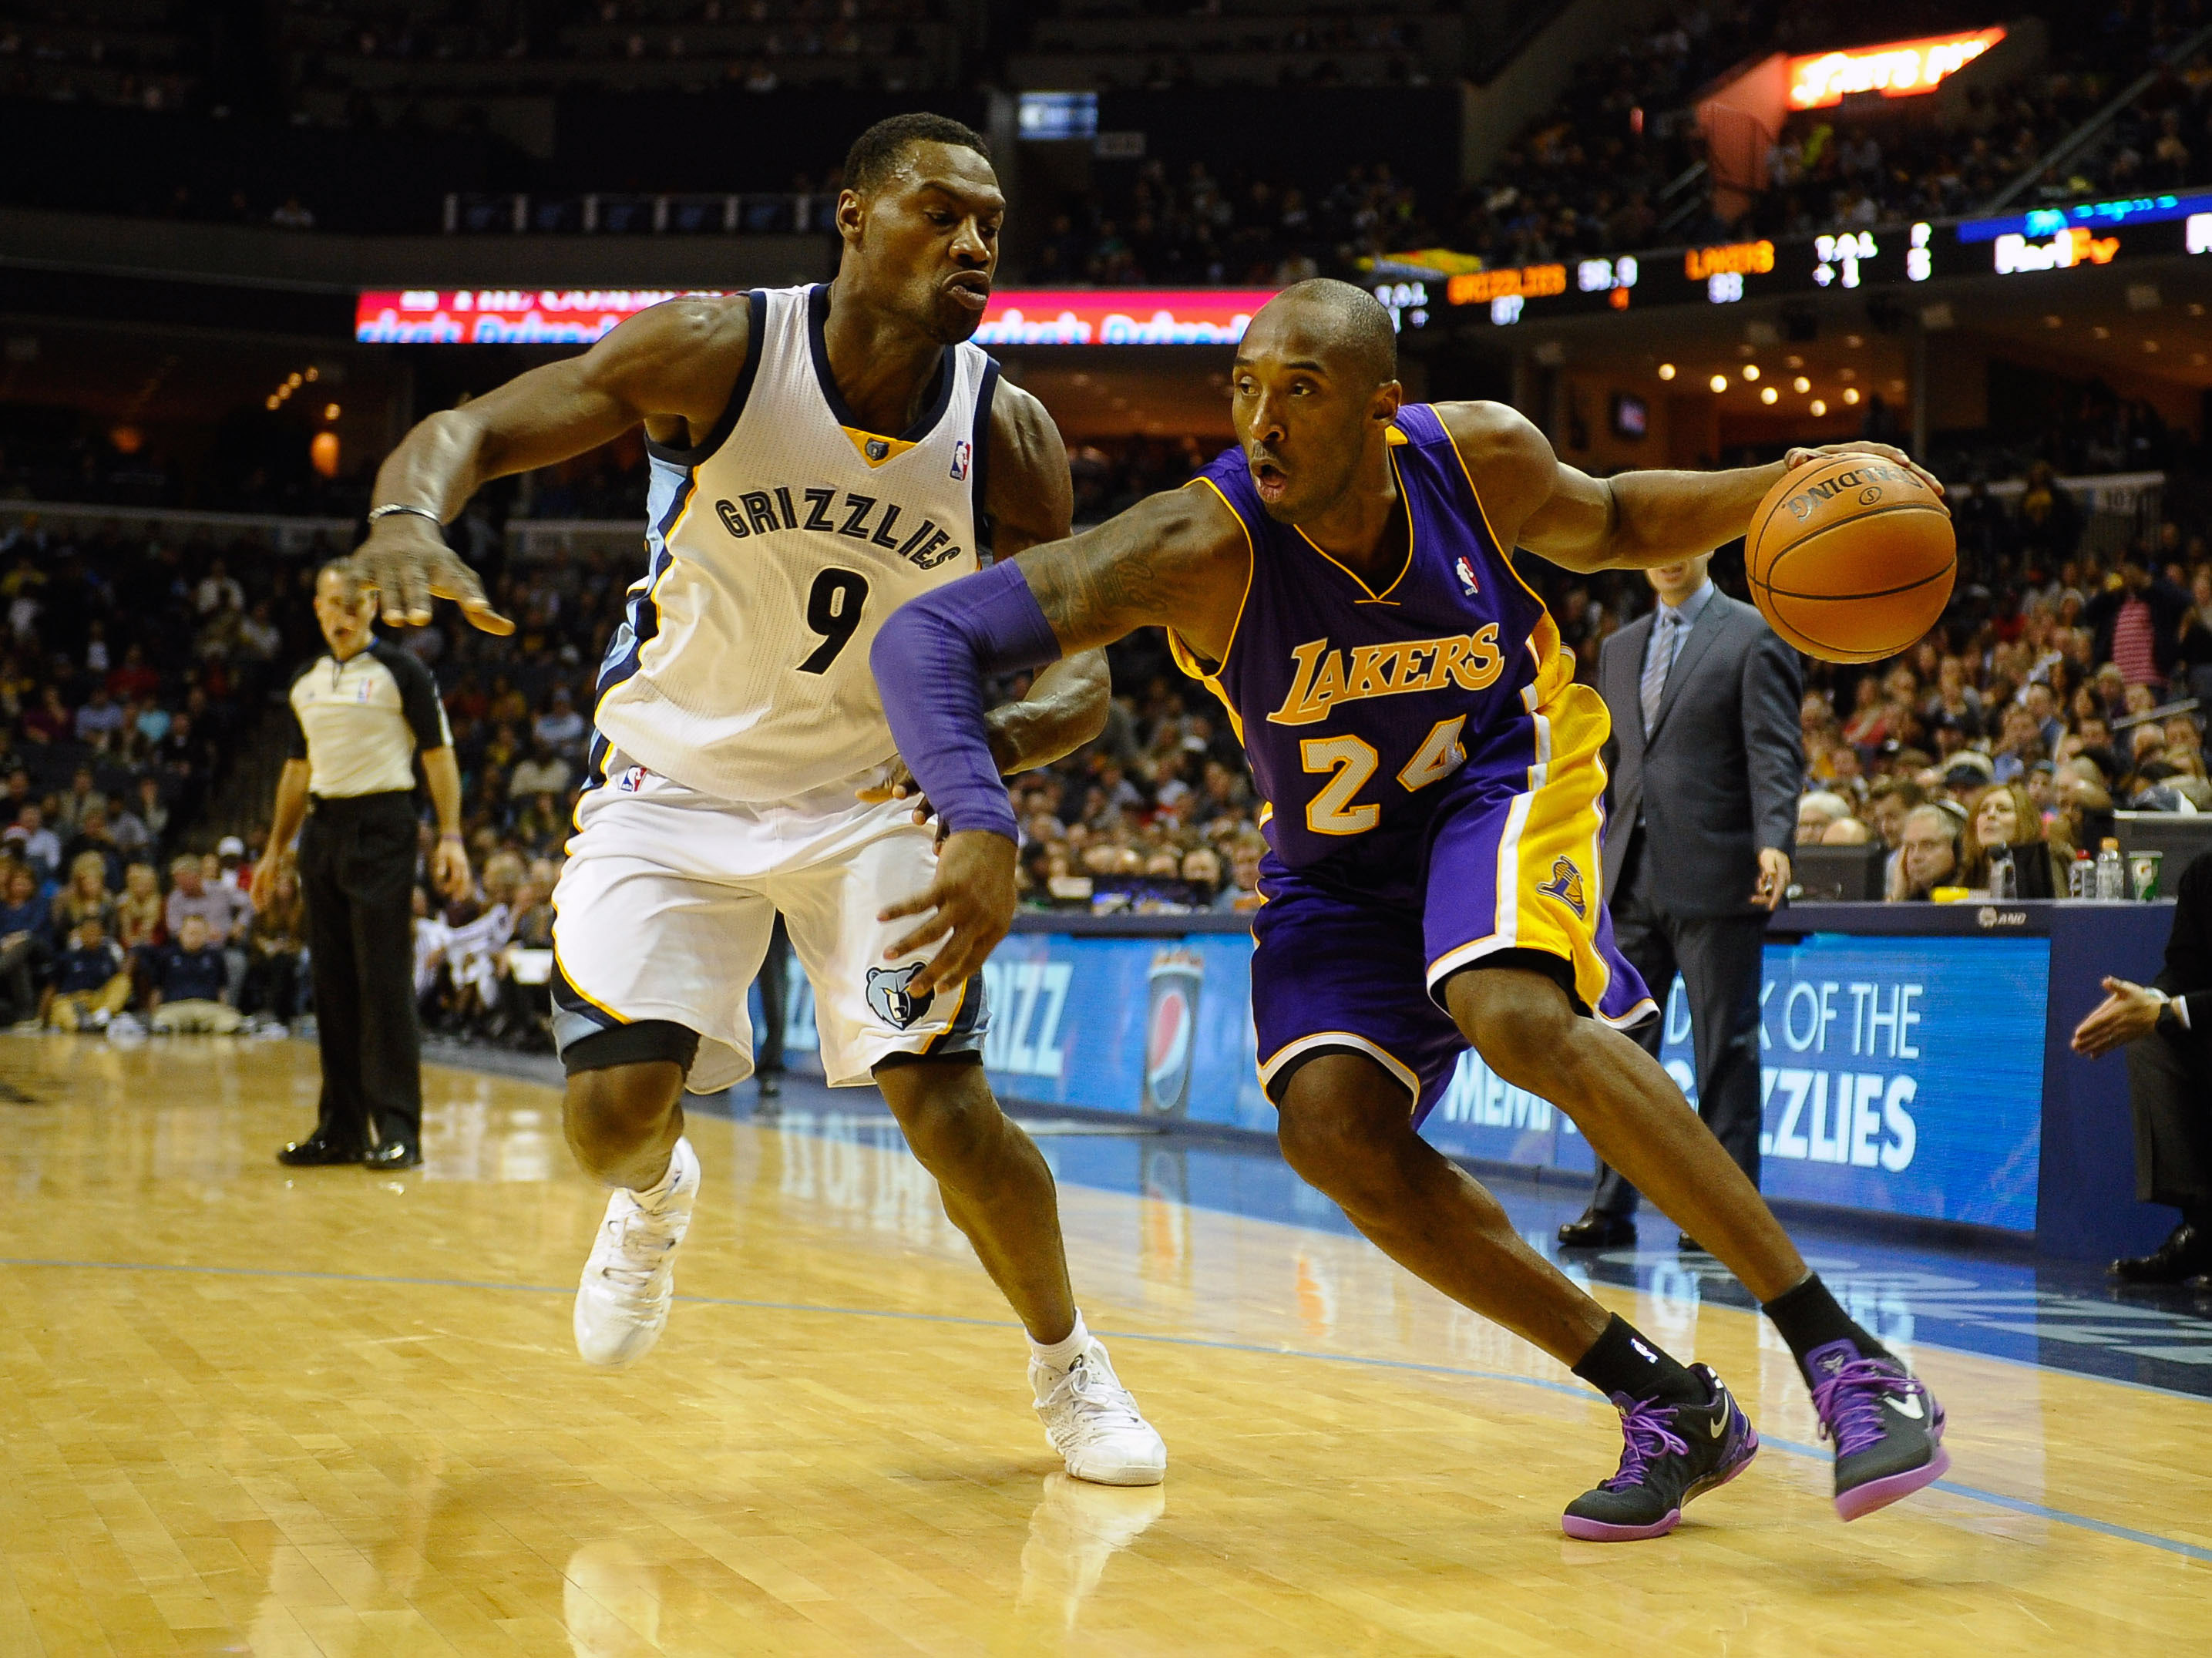 Lakers Legend Kobe Bryant's NBA Career Comes to a Close